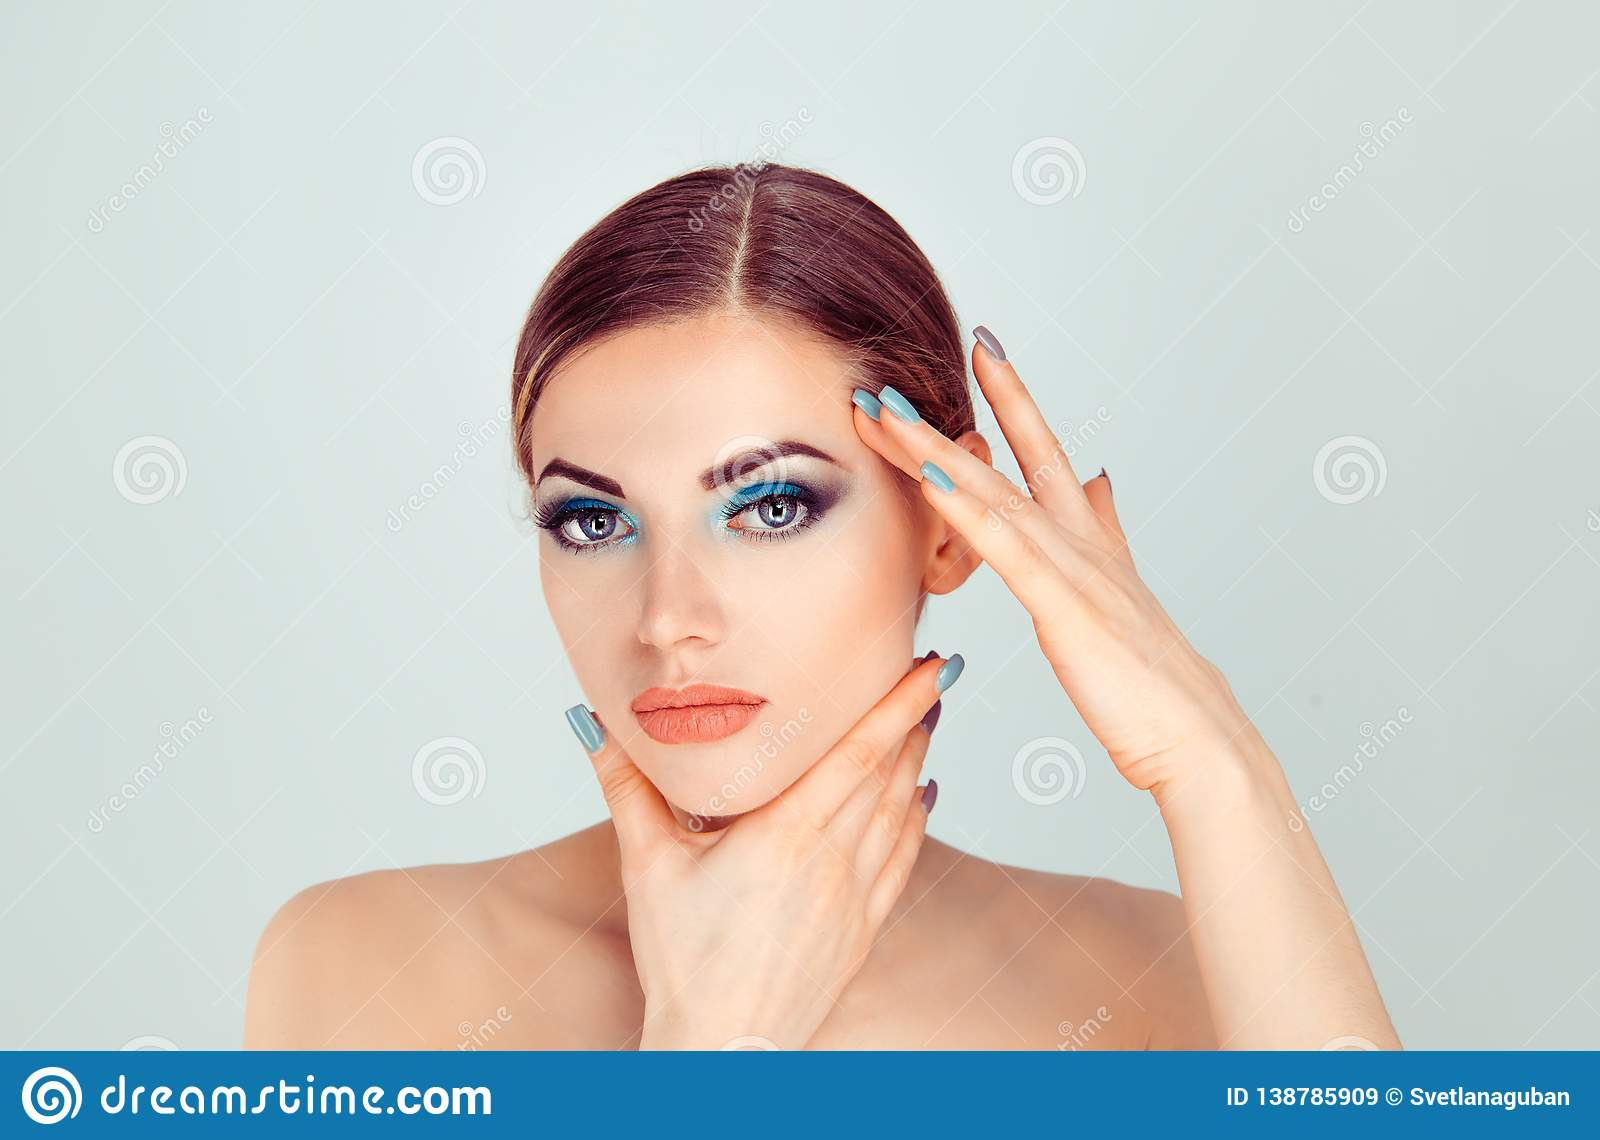 Woman touching face with hands showing perfect makeup and soft skin